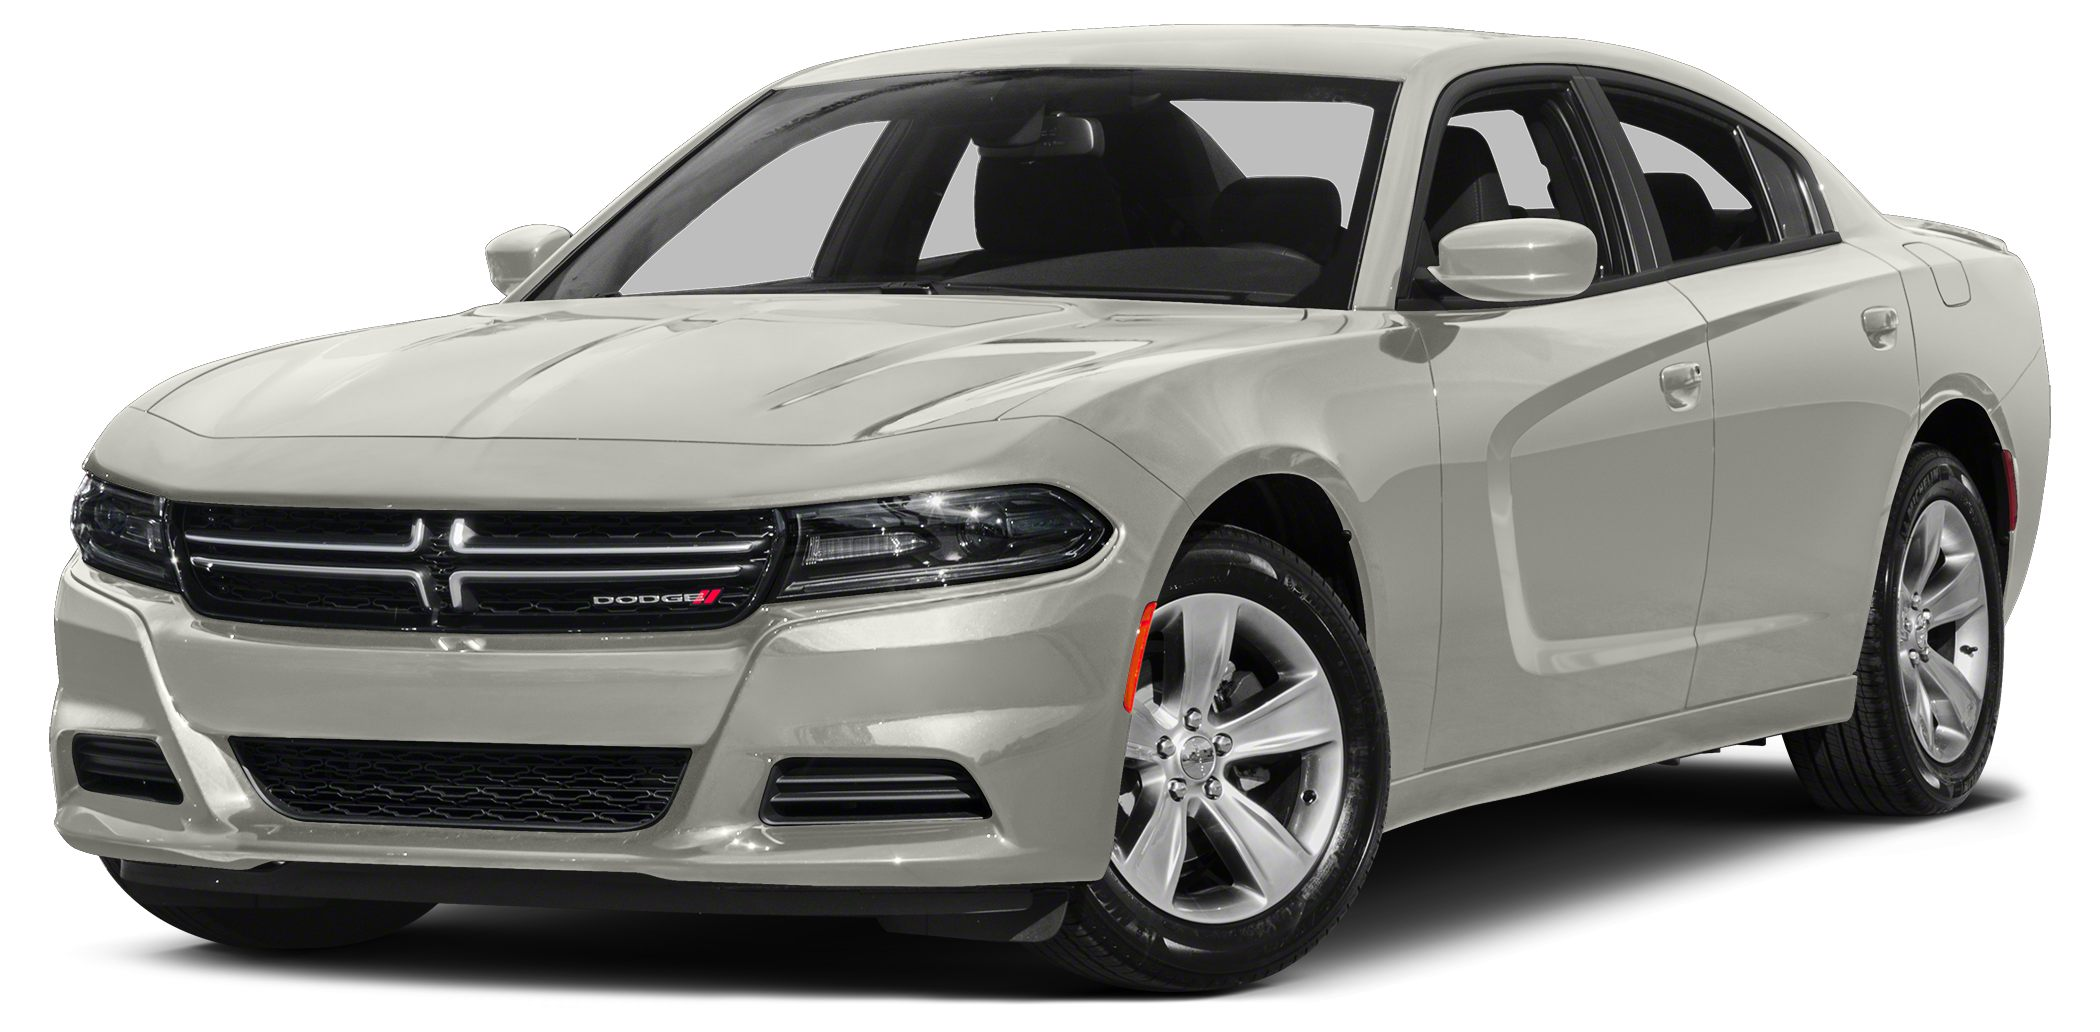 2015 Dodge Charger SE DISCLAIMER We are excited to offer this vehicle to you but it is currently